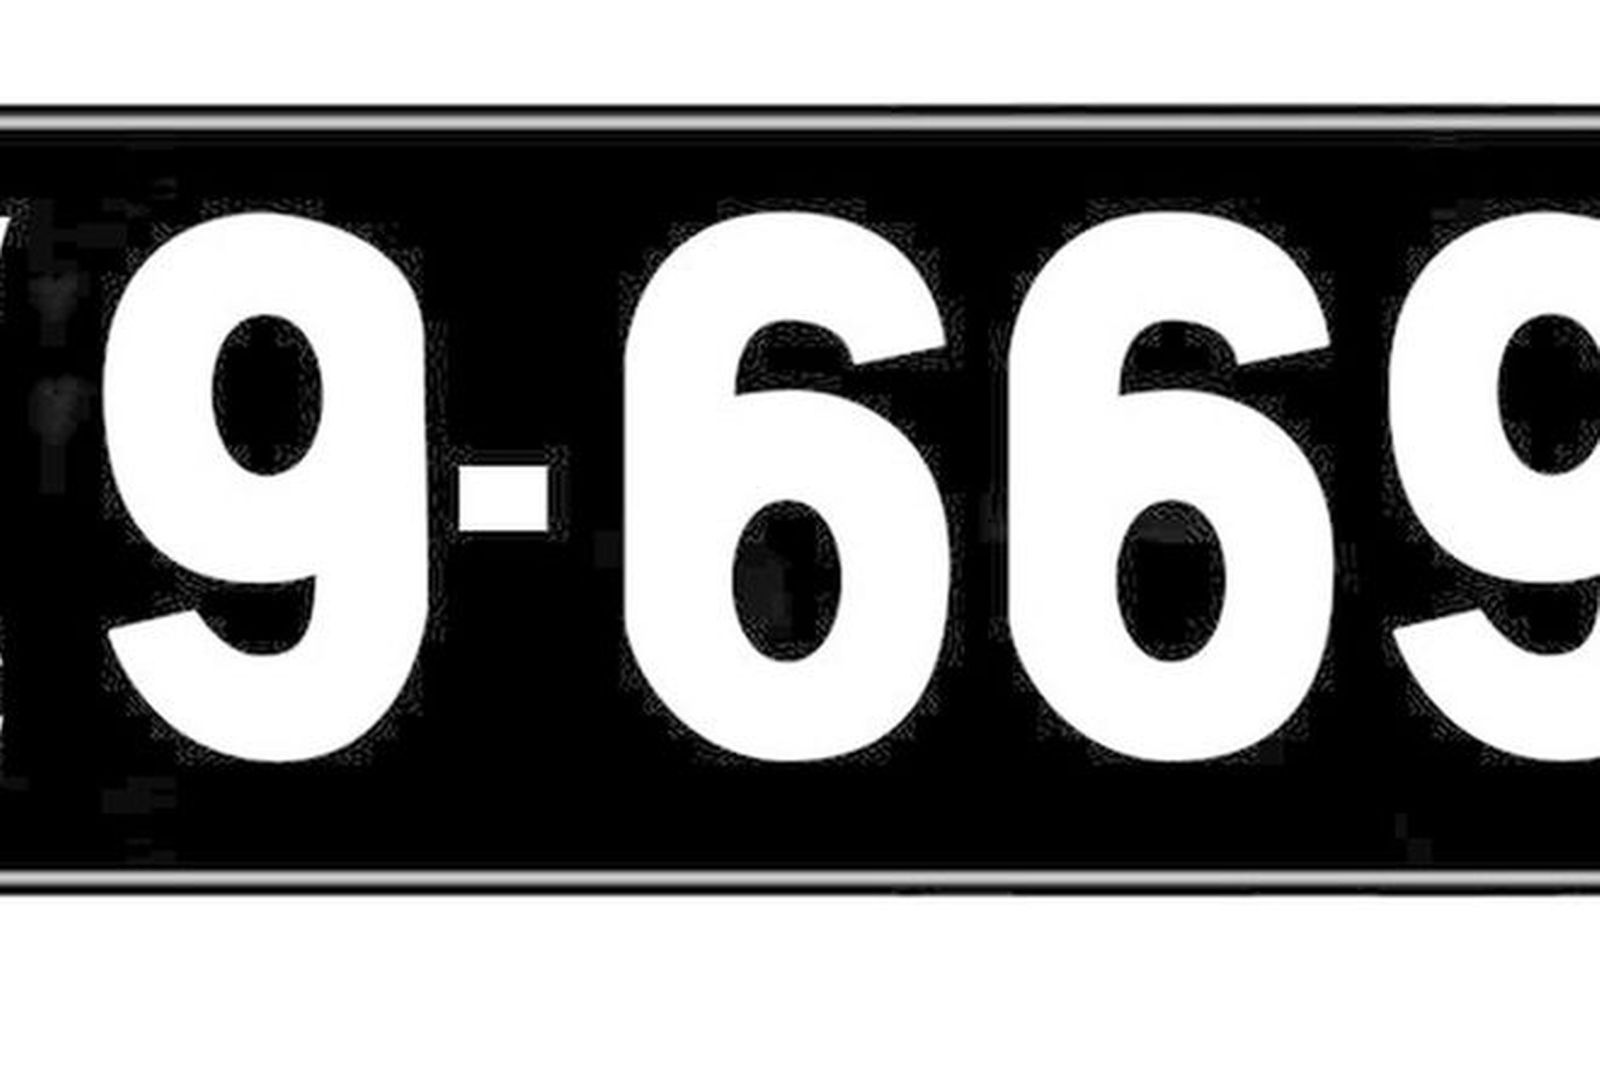 how to read victorian number plates